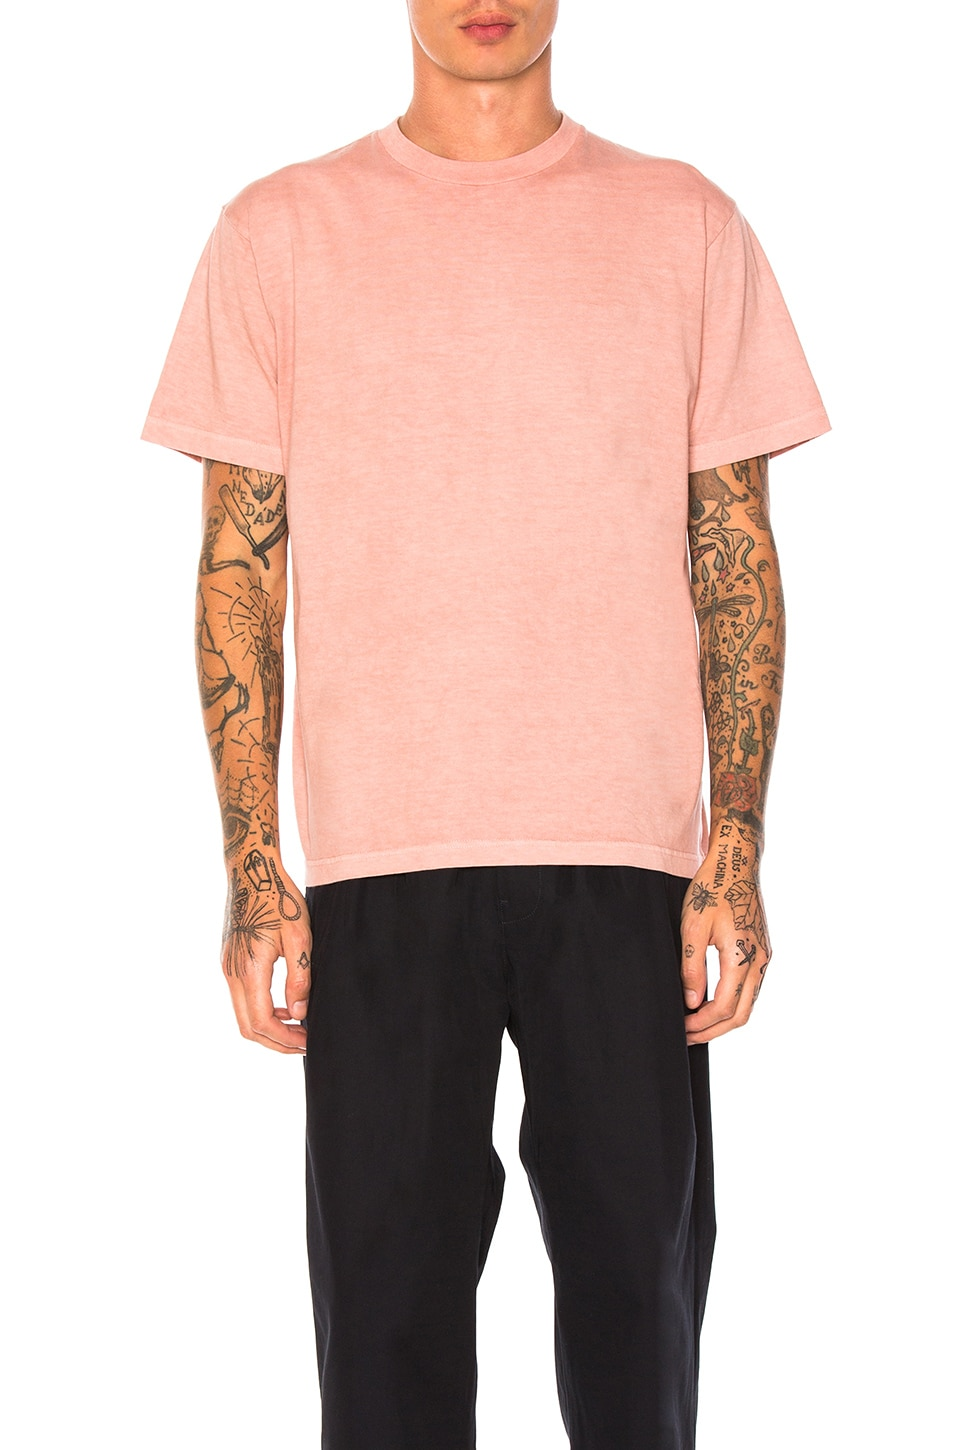 Natural Dyed Block Tee by Maiden Noir